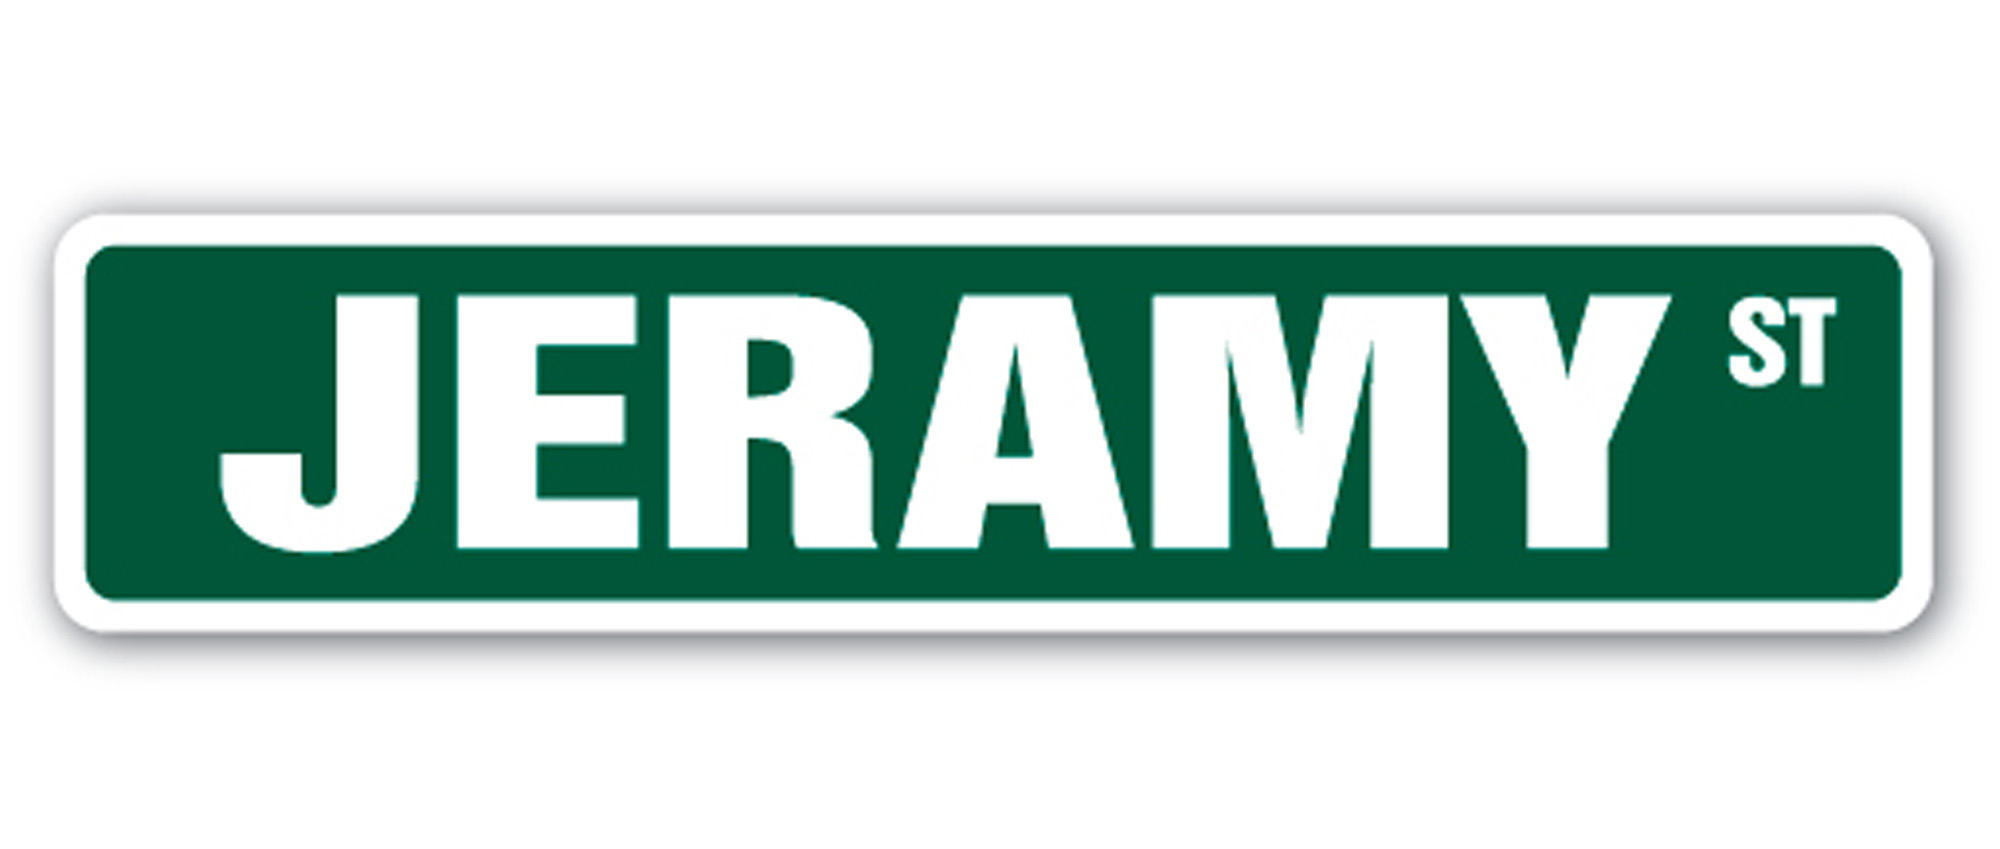 JEREMIAH Street Sign Childrens Name Room Decal Indoor//Outdoor